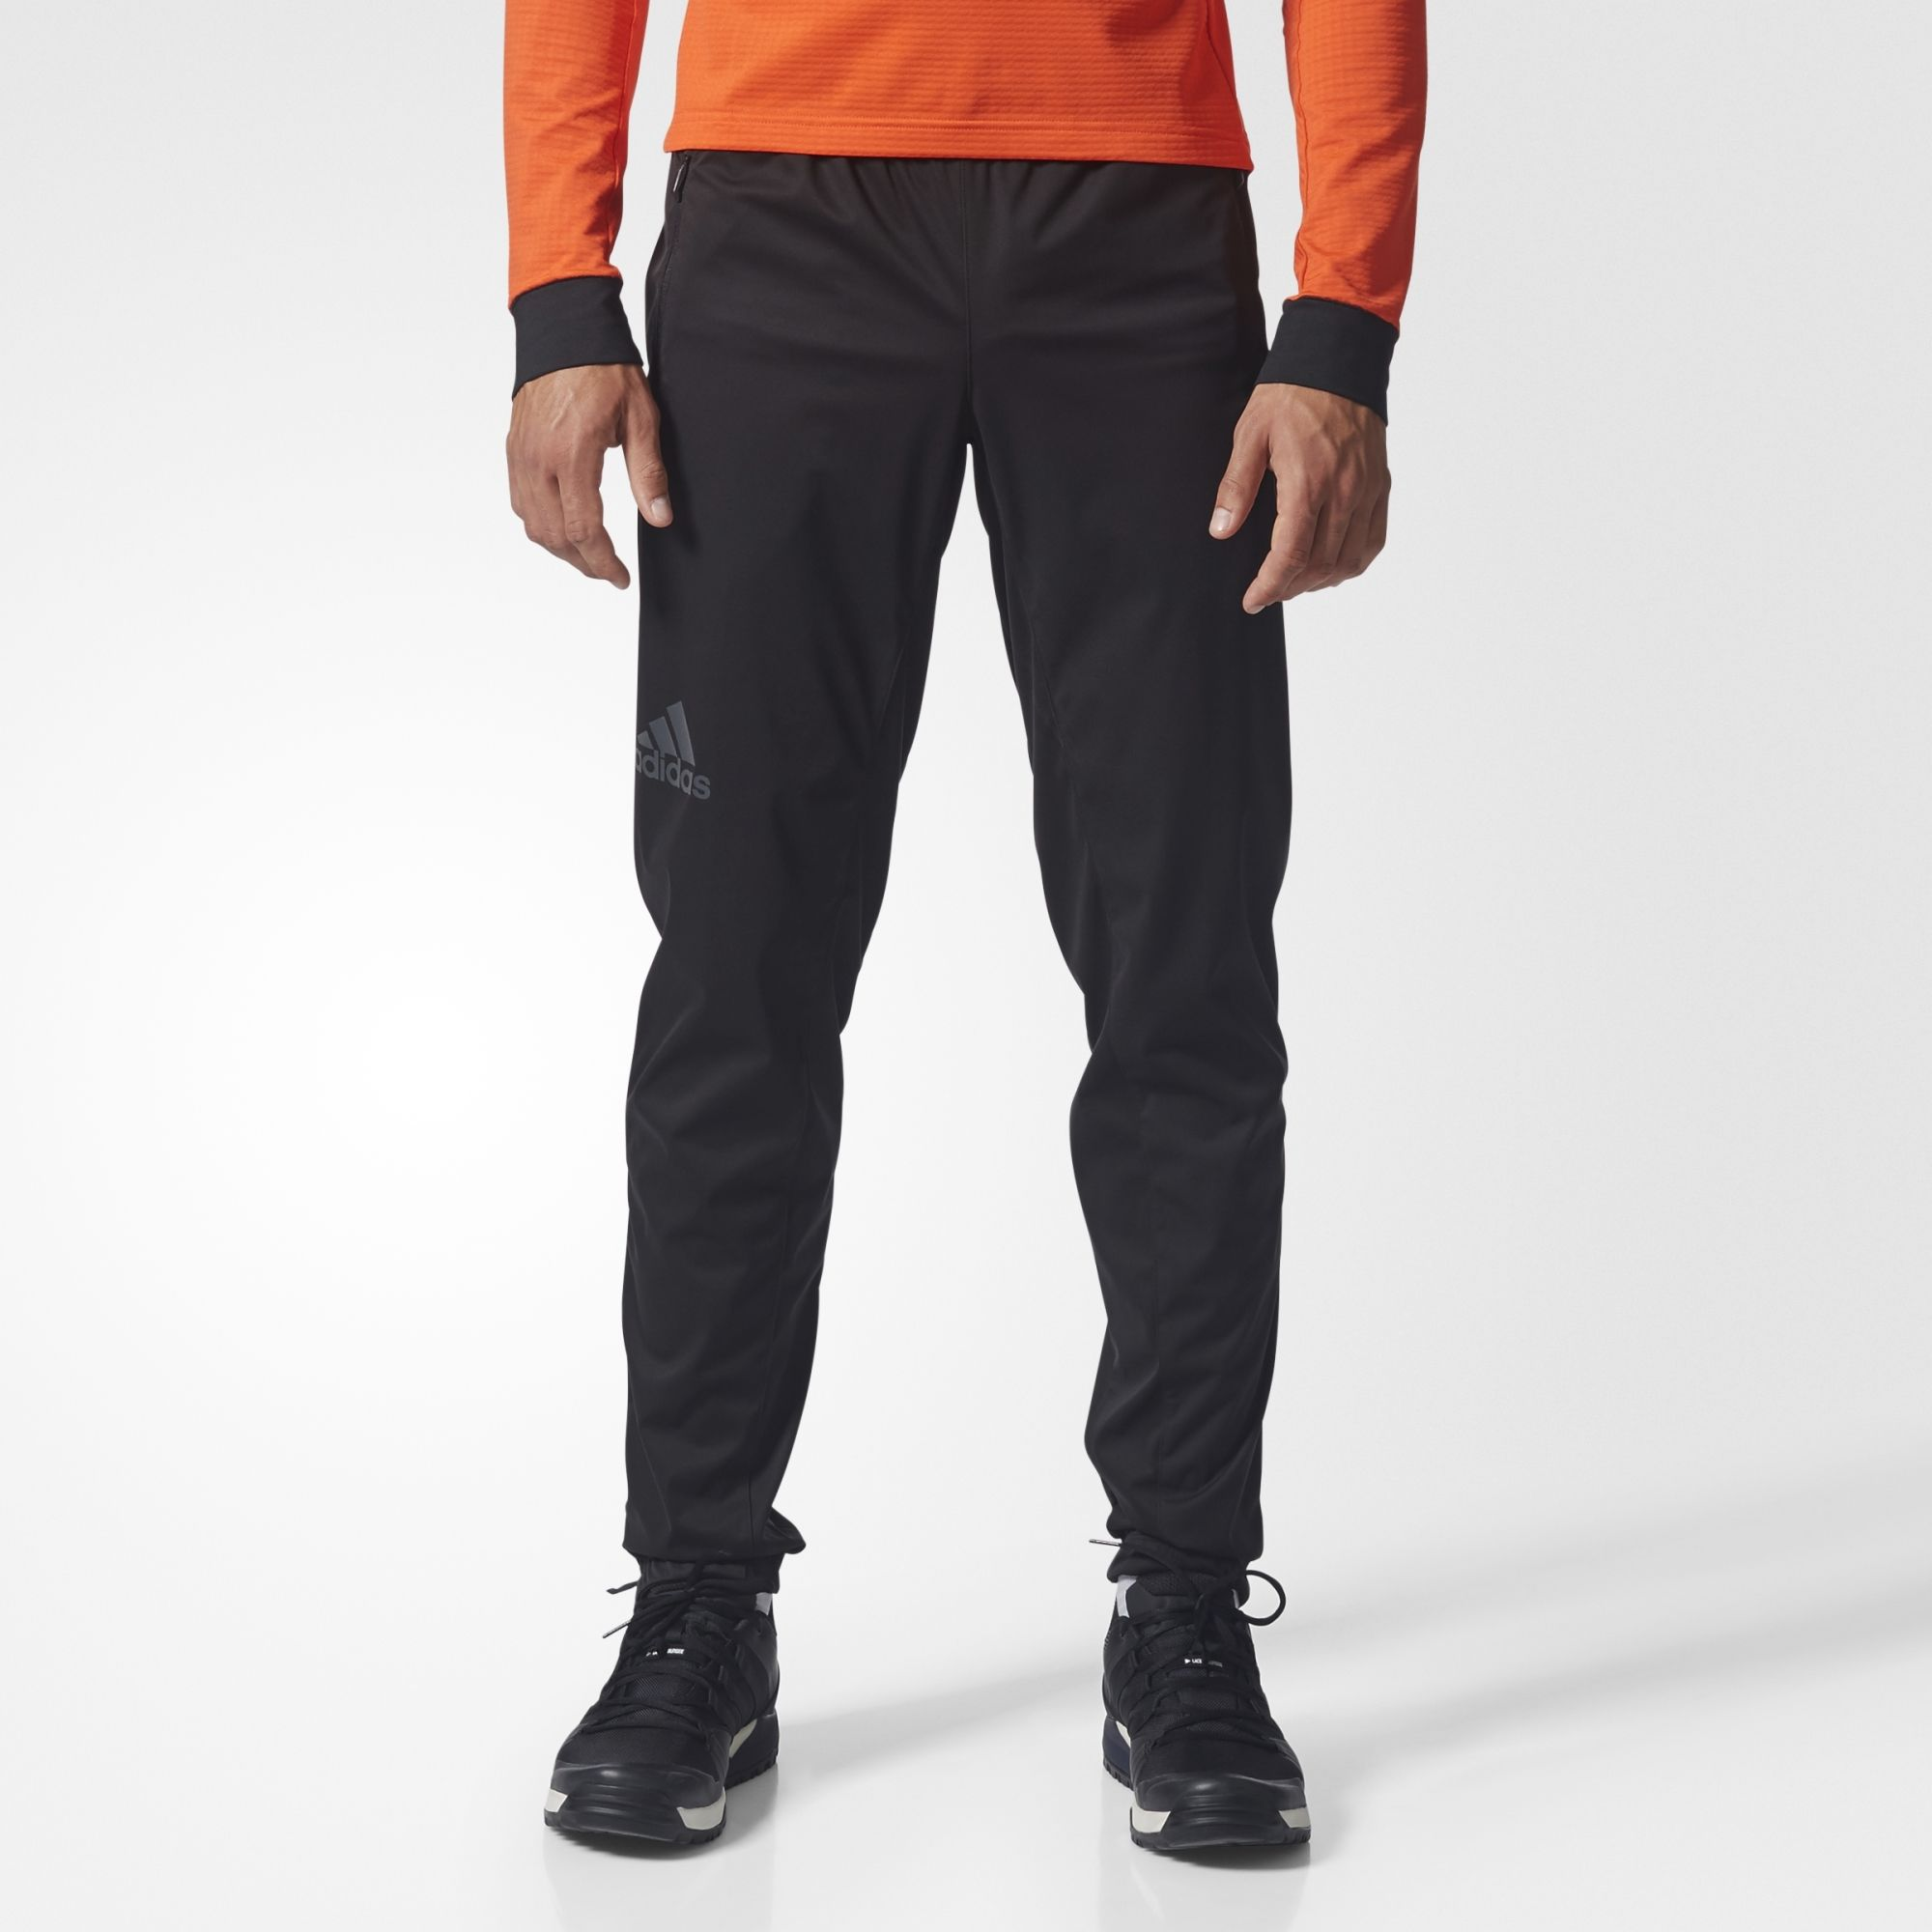 adidas Xperior Pants in Schwarz